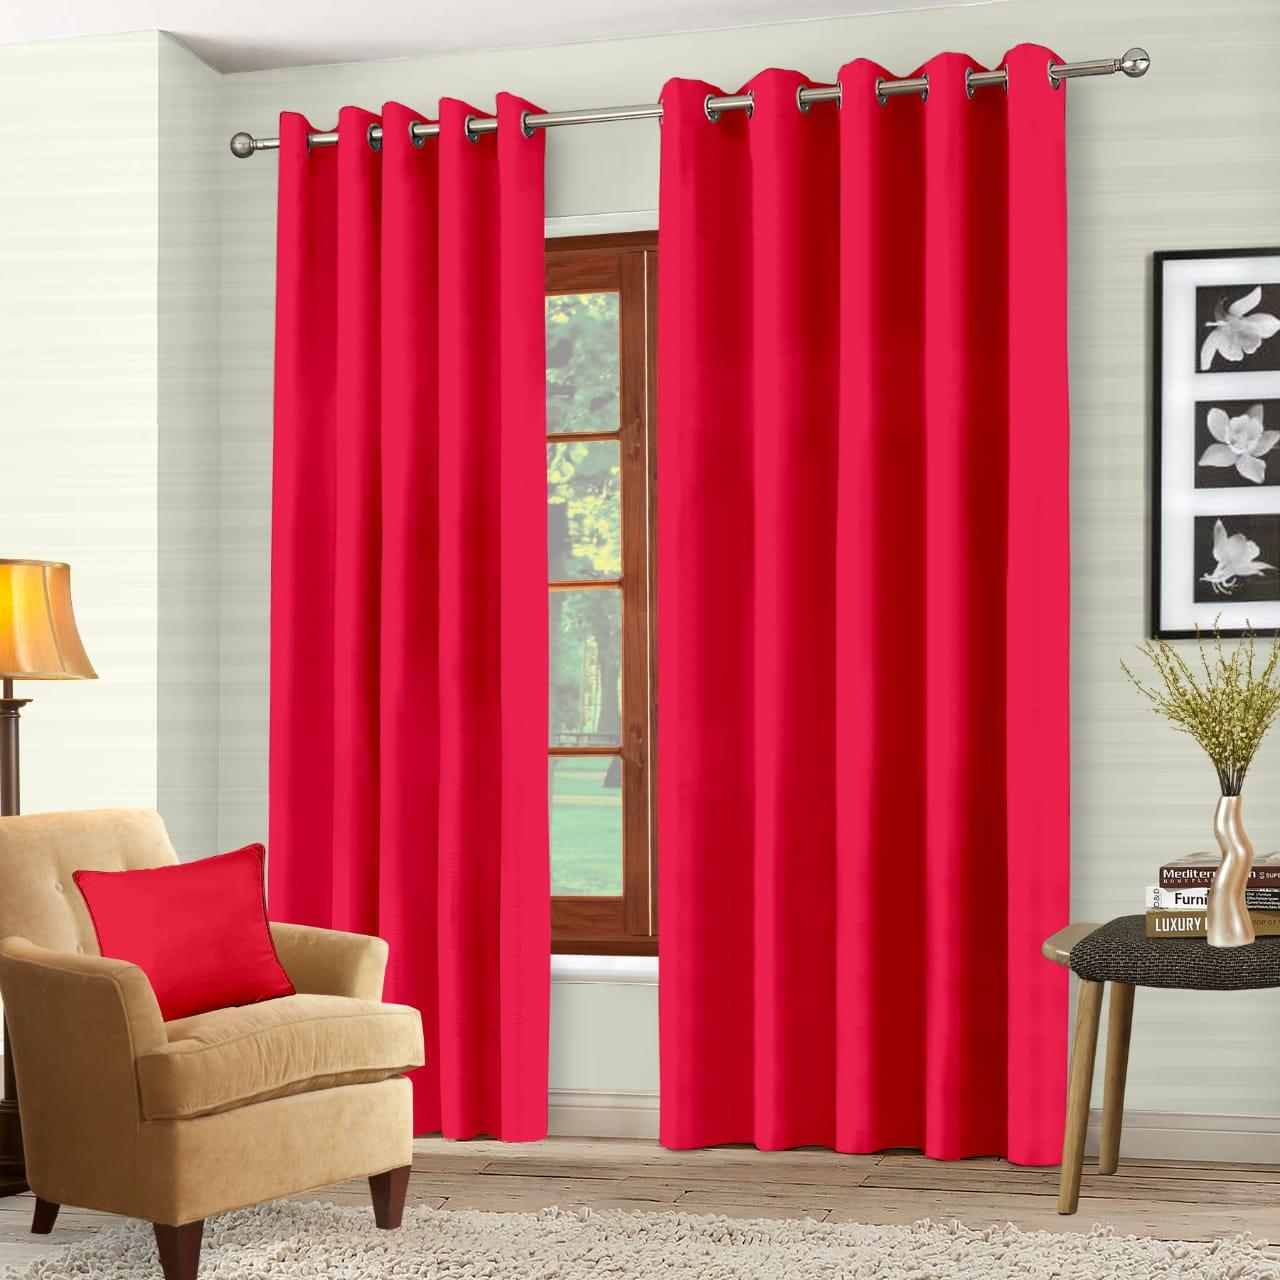 Luxury-Thermal-Blackout-Eyelet-Ring-Top-Curtains-Pair-with-tie-backs thumbnail 43